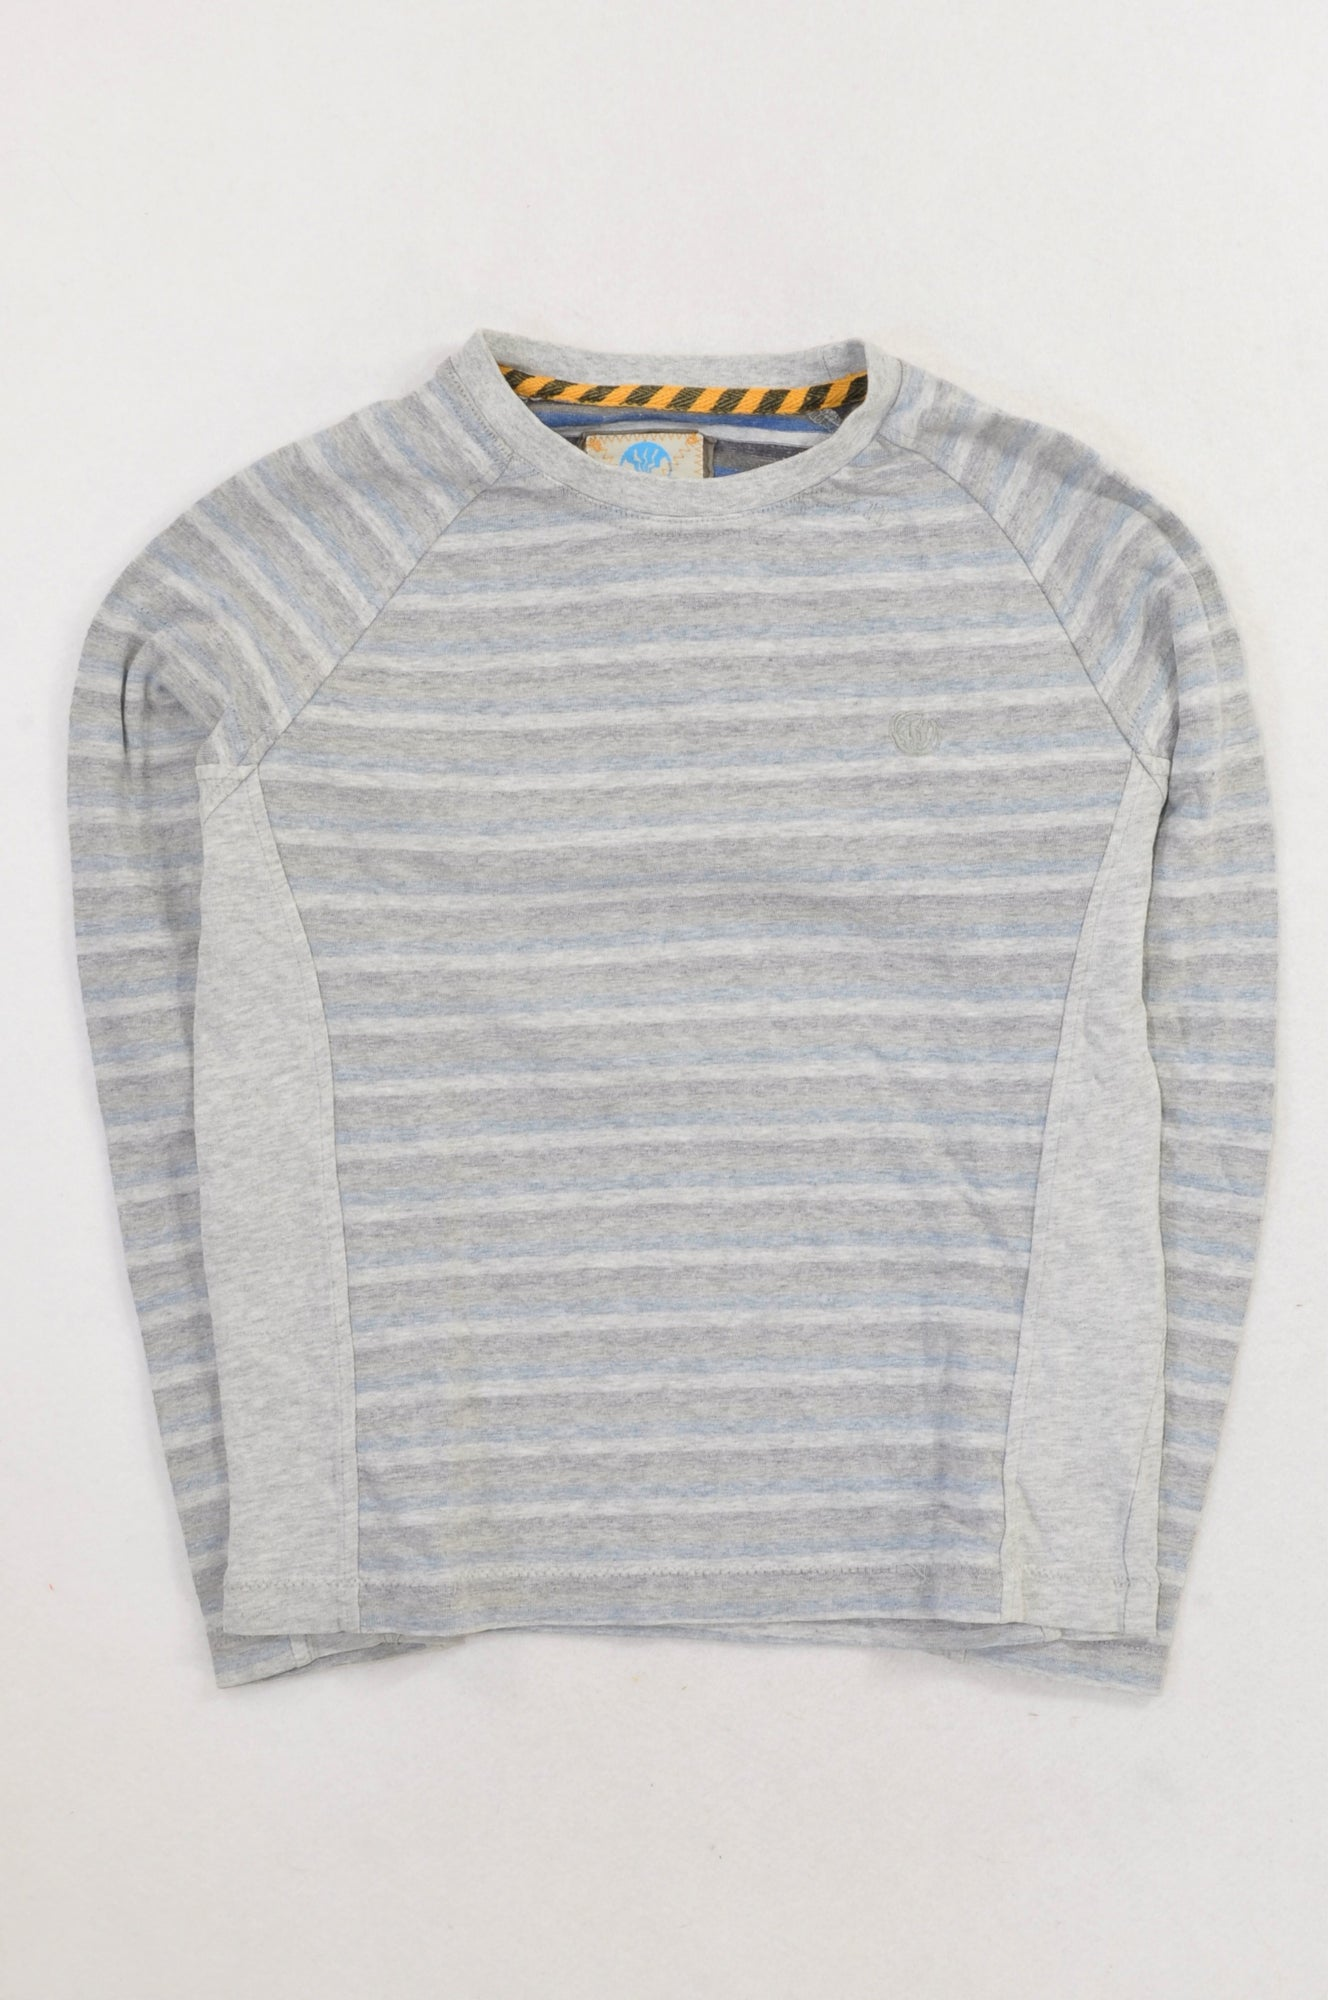 Grey & Blue Stripe Winter Top Boys 8-9 years